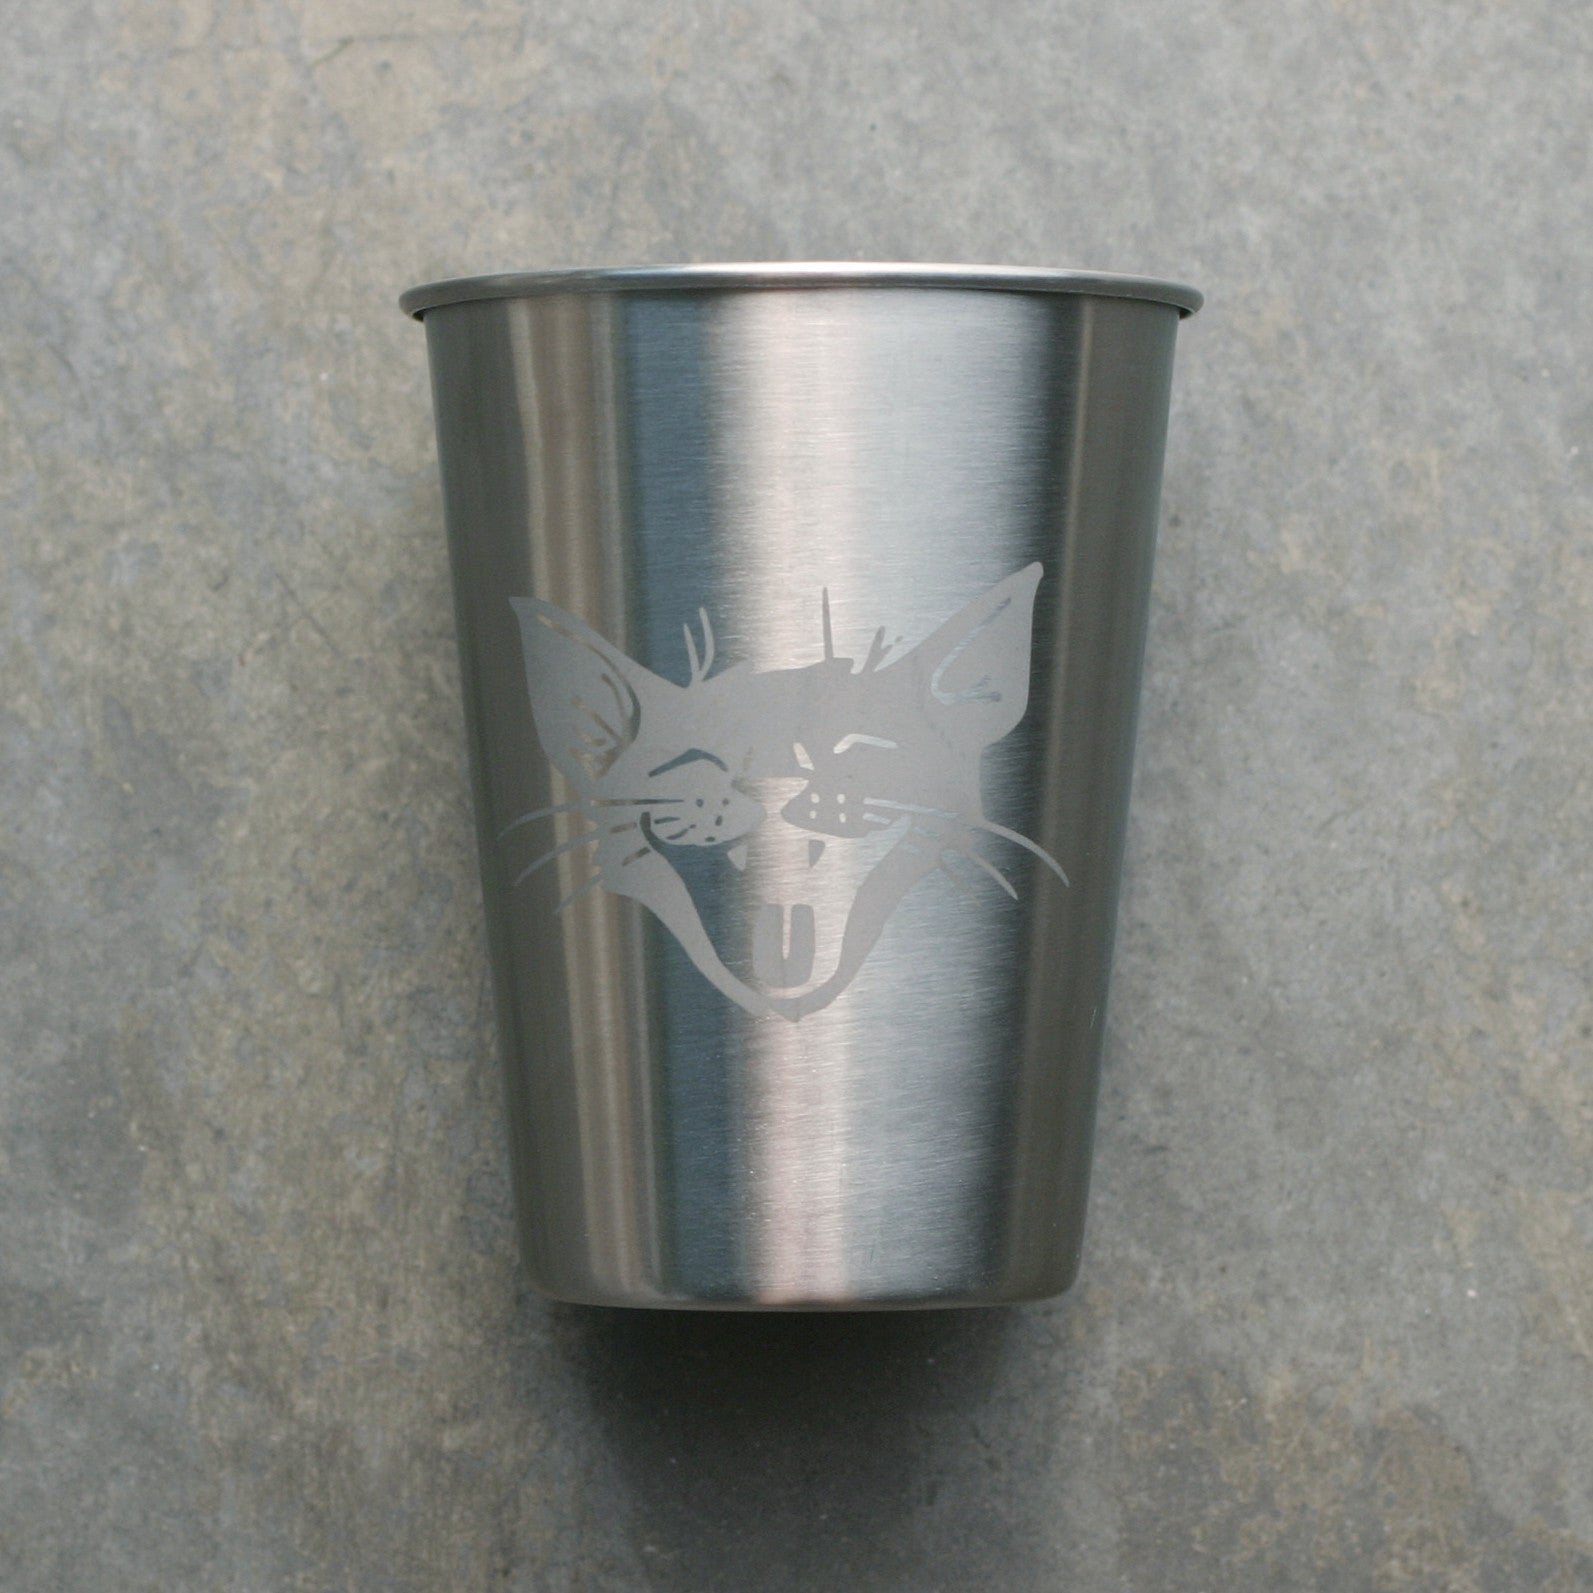 Laughing Cat 12oz stainless steel cup